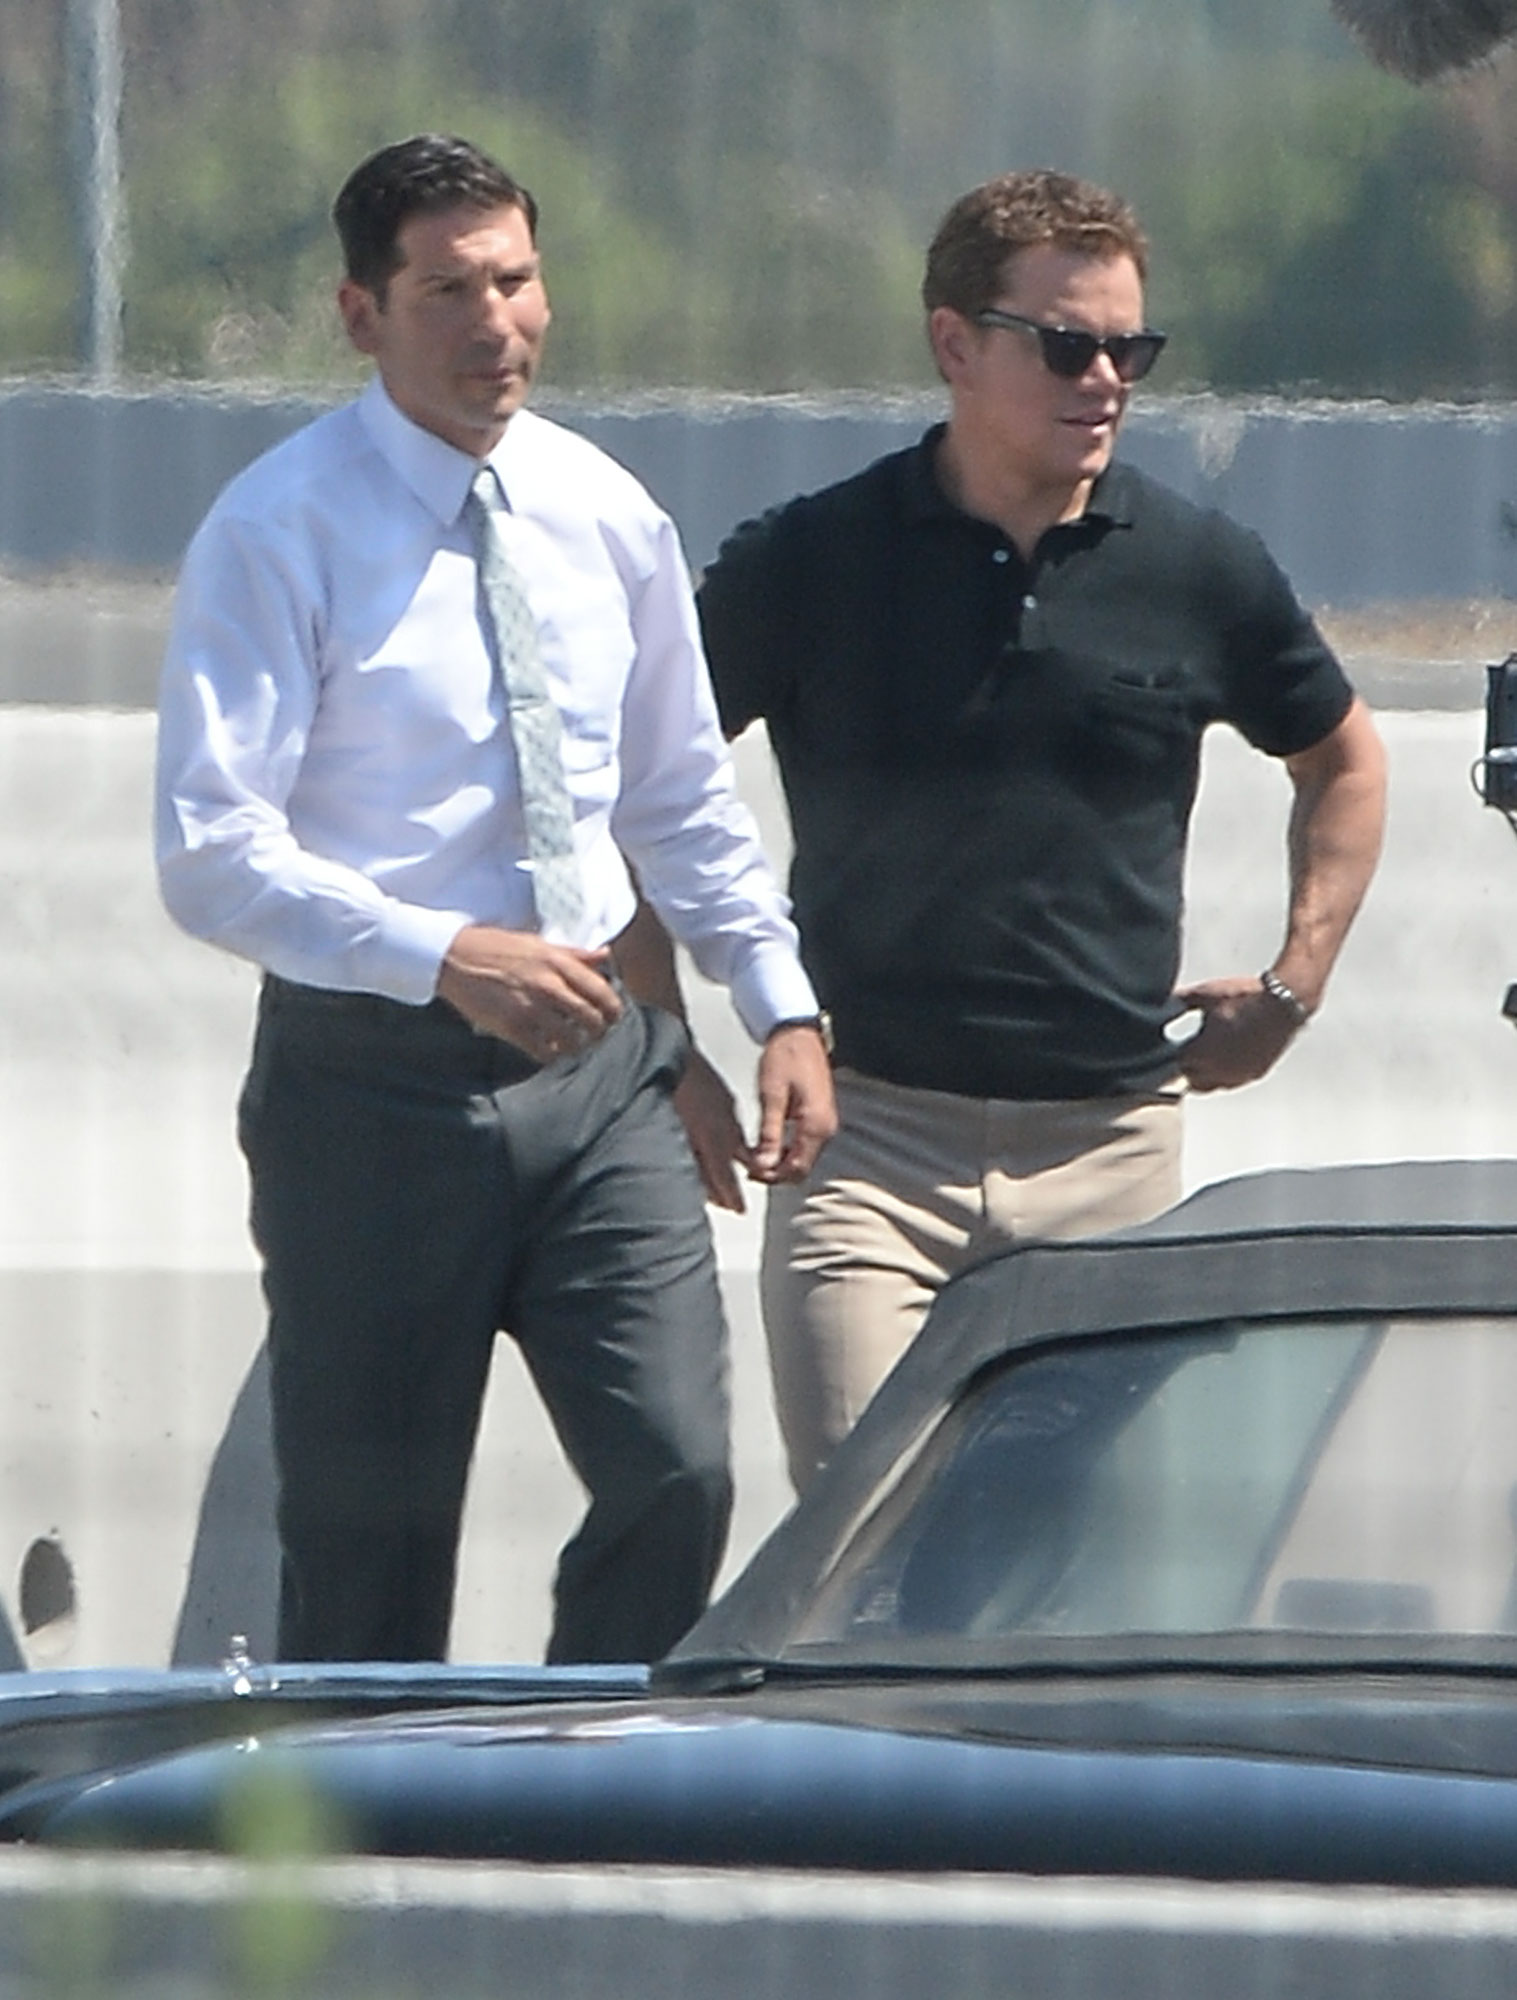 EXCLUSIVE: Matt Damon is Spotted on the Set of Ford v. Ferrari in Los Angeles.